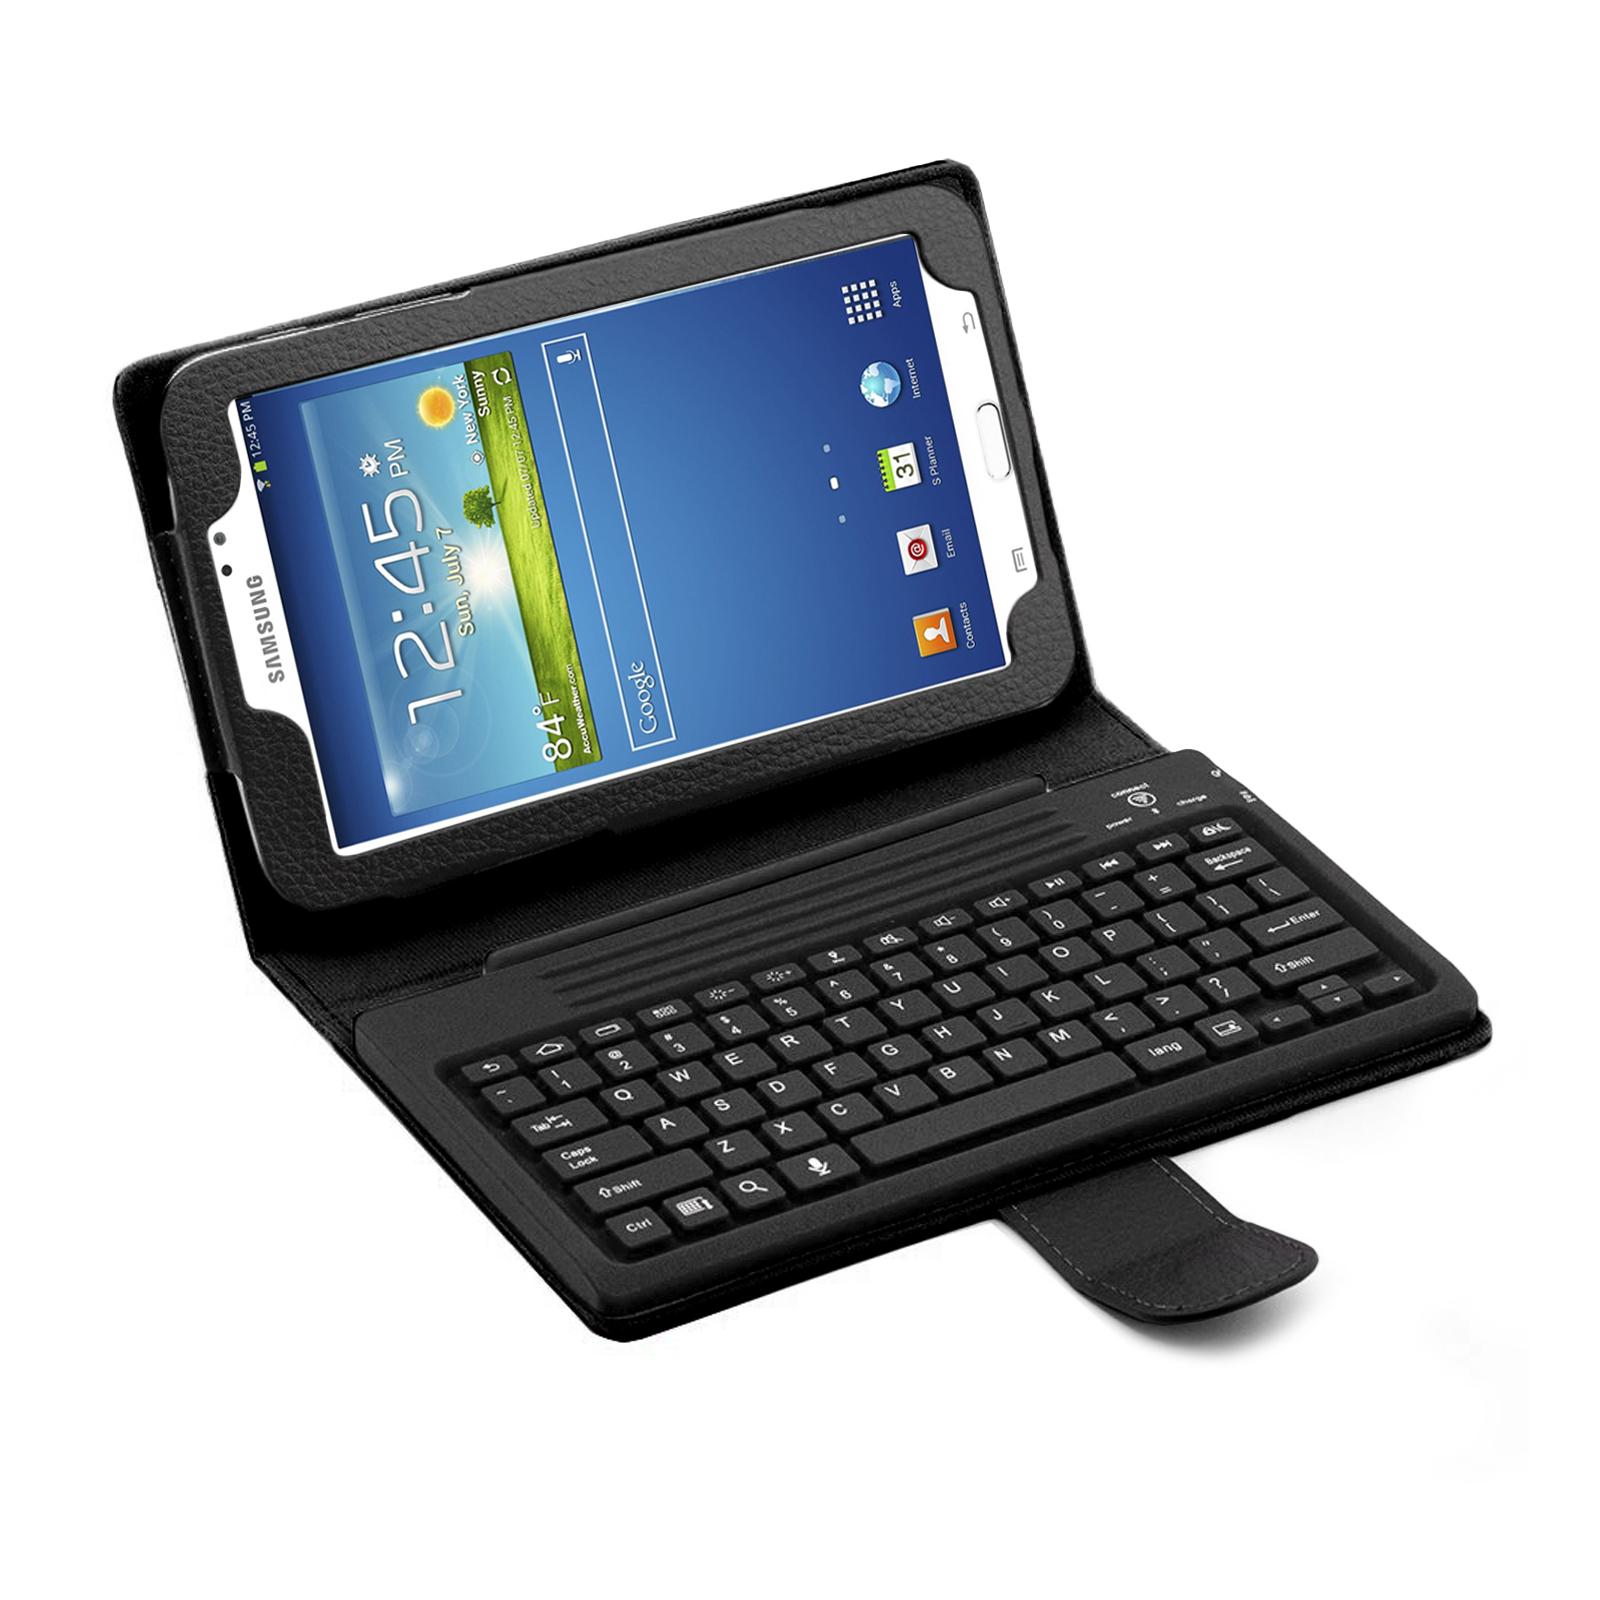 "Bluetooth Keyboard Folio for Samsung Galaxy Tab 3 7.0"" Tablet (87458)"